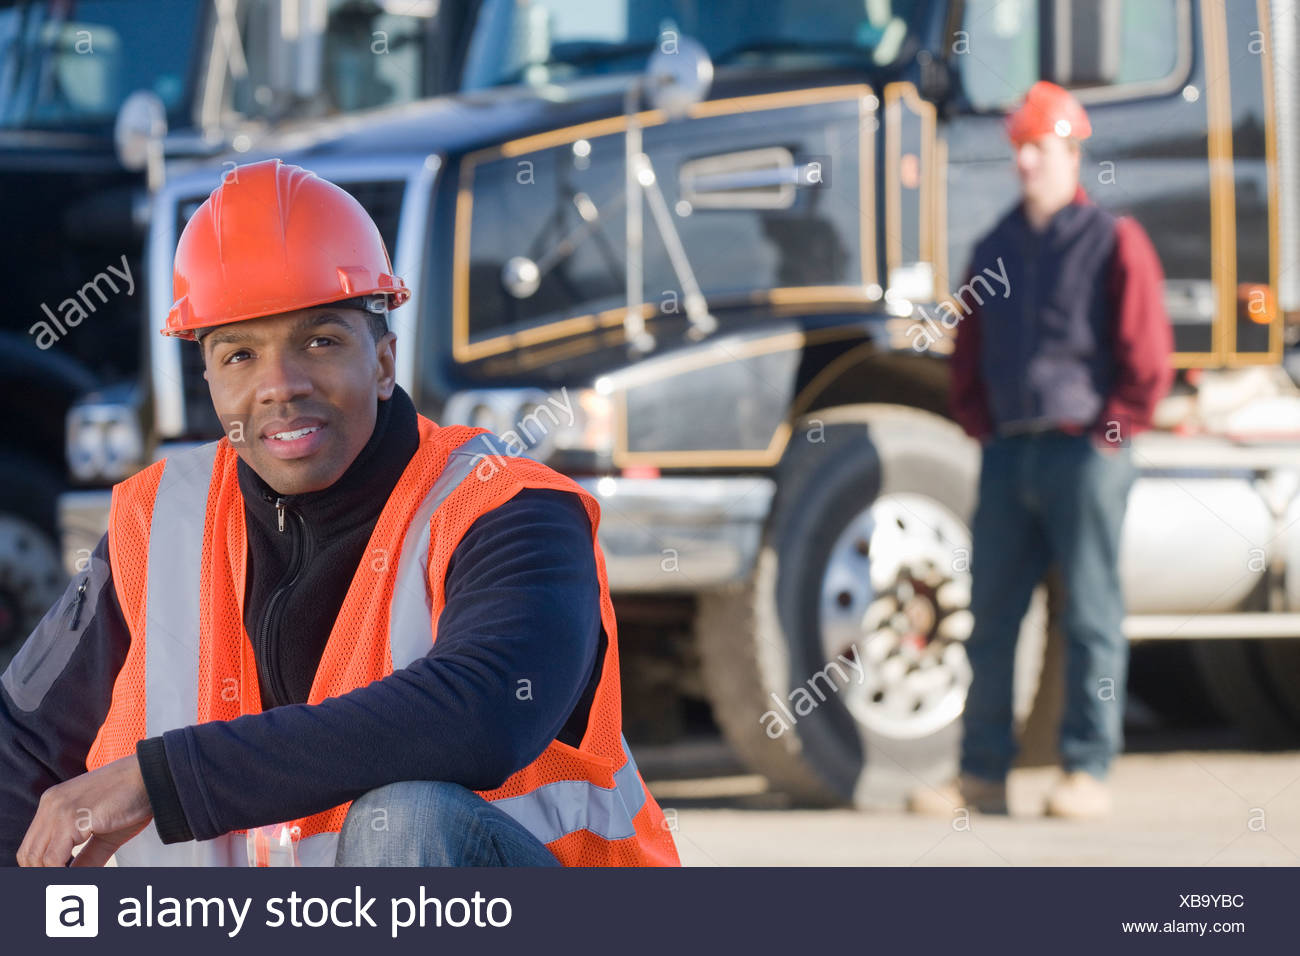 Engineer at a construction site - Stock Image